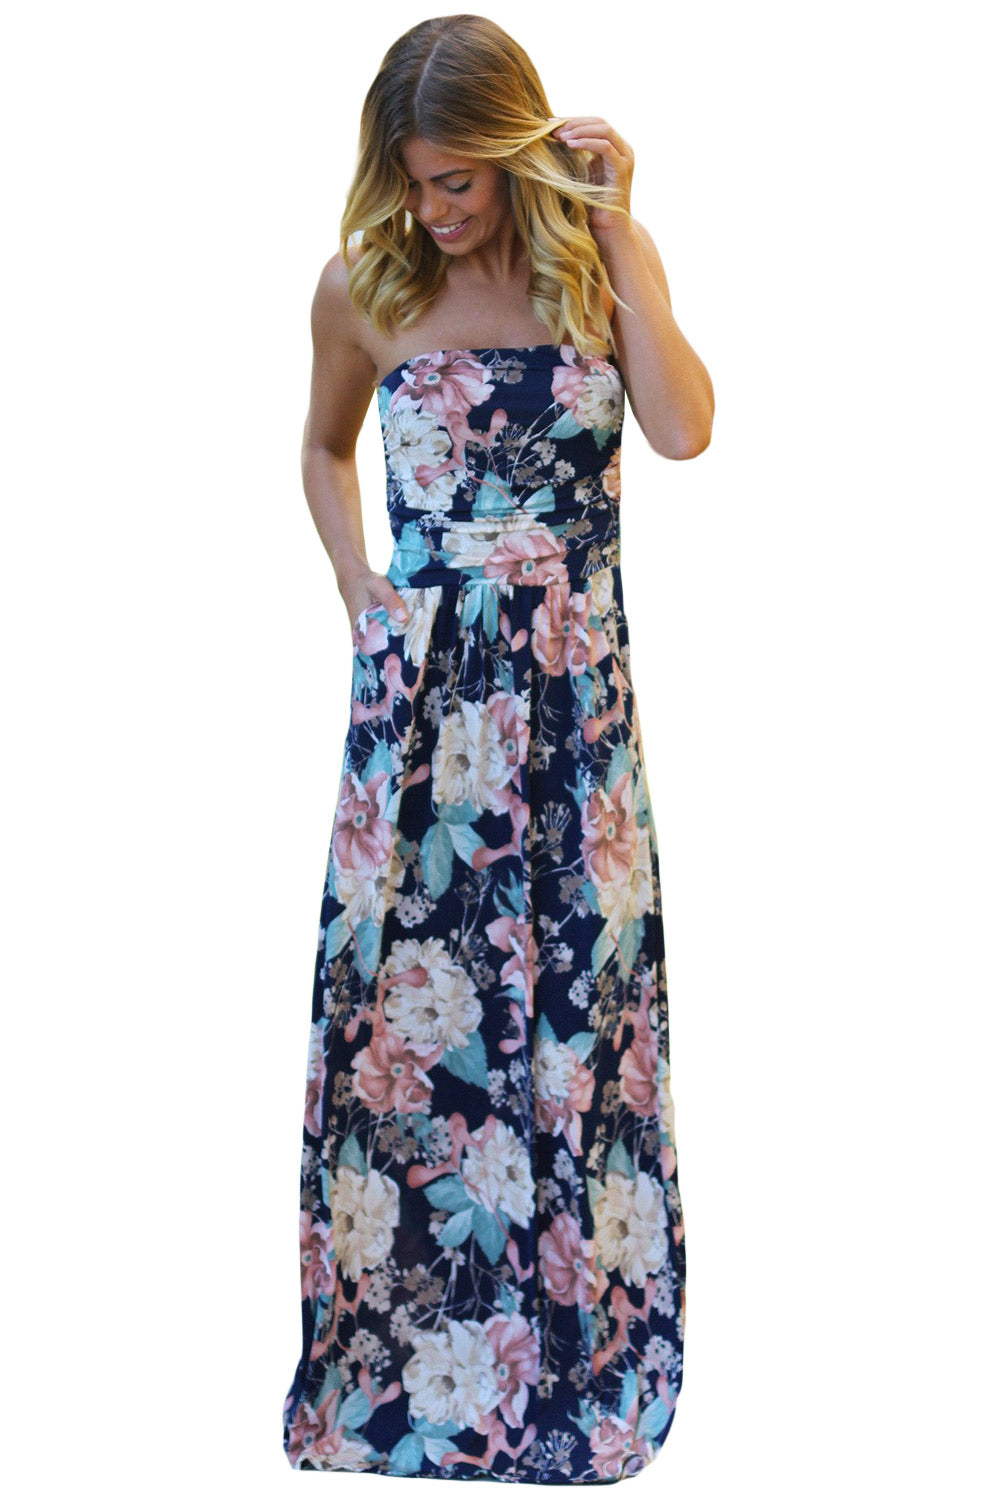 Peach Navy Floral Strapless Maxi Dress with Pockets